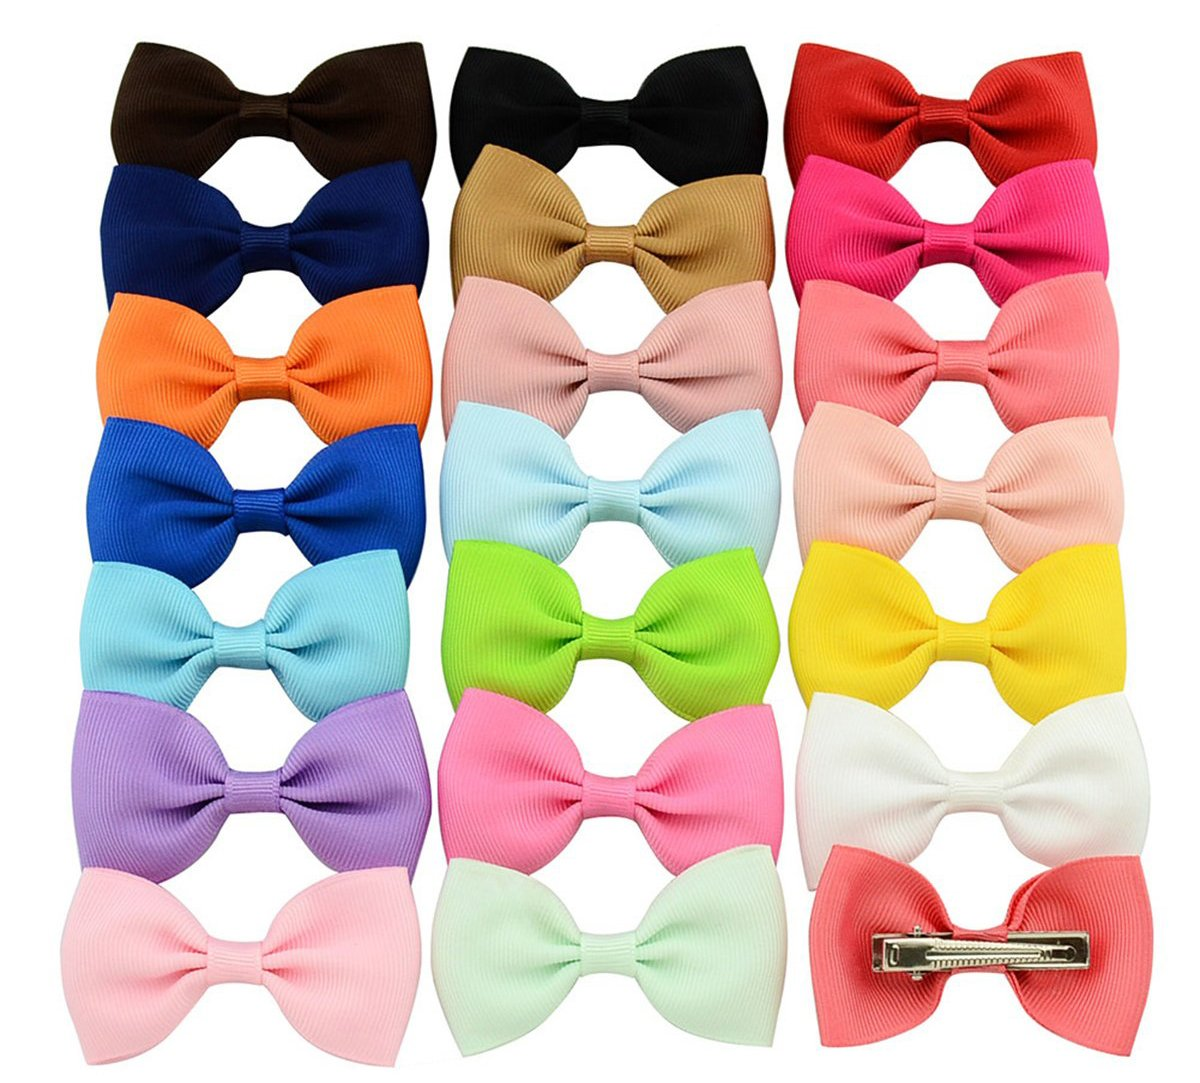 Calliar 2.75in Large Hairpin Hair Bows Clips Barrettes For Baby Girls Teens Toddlers Newborn ,20Pack-Color2